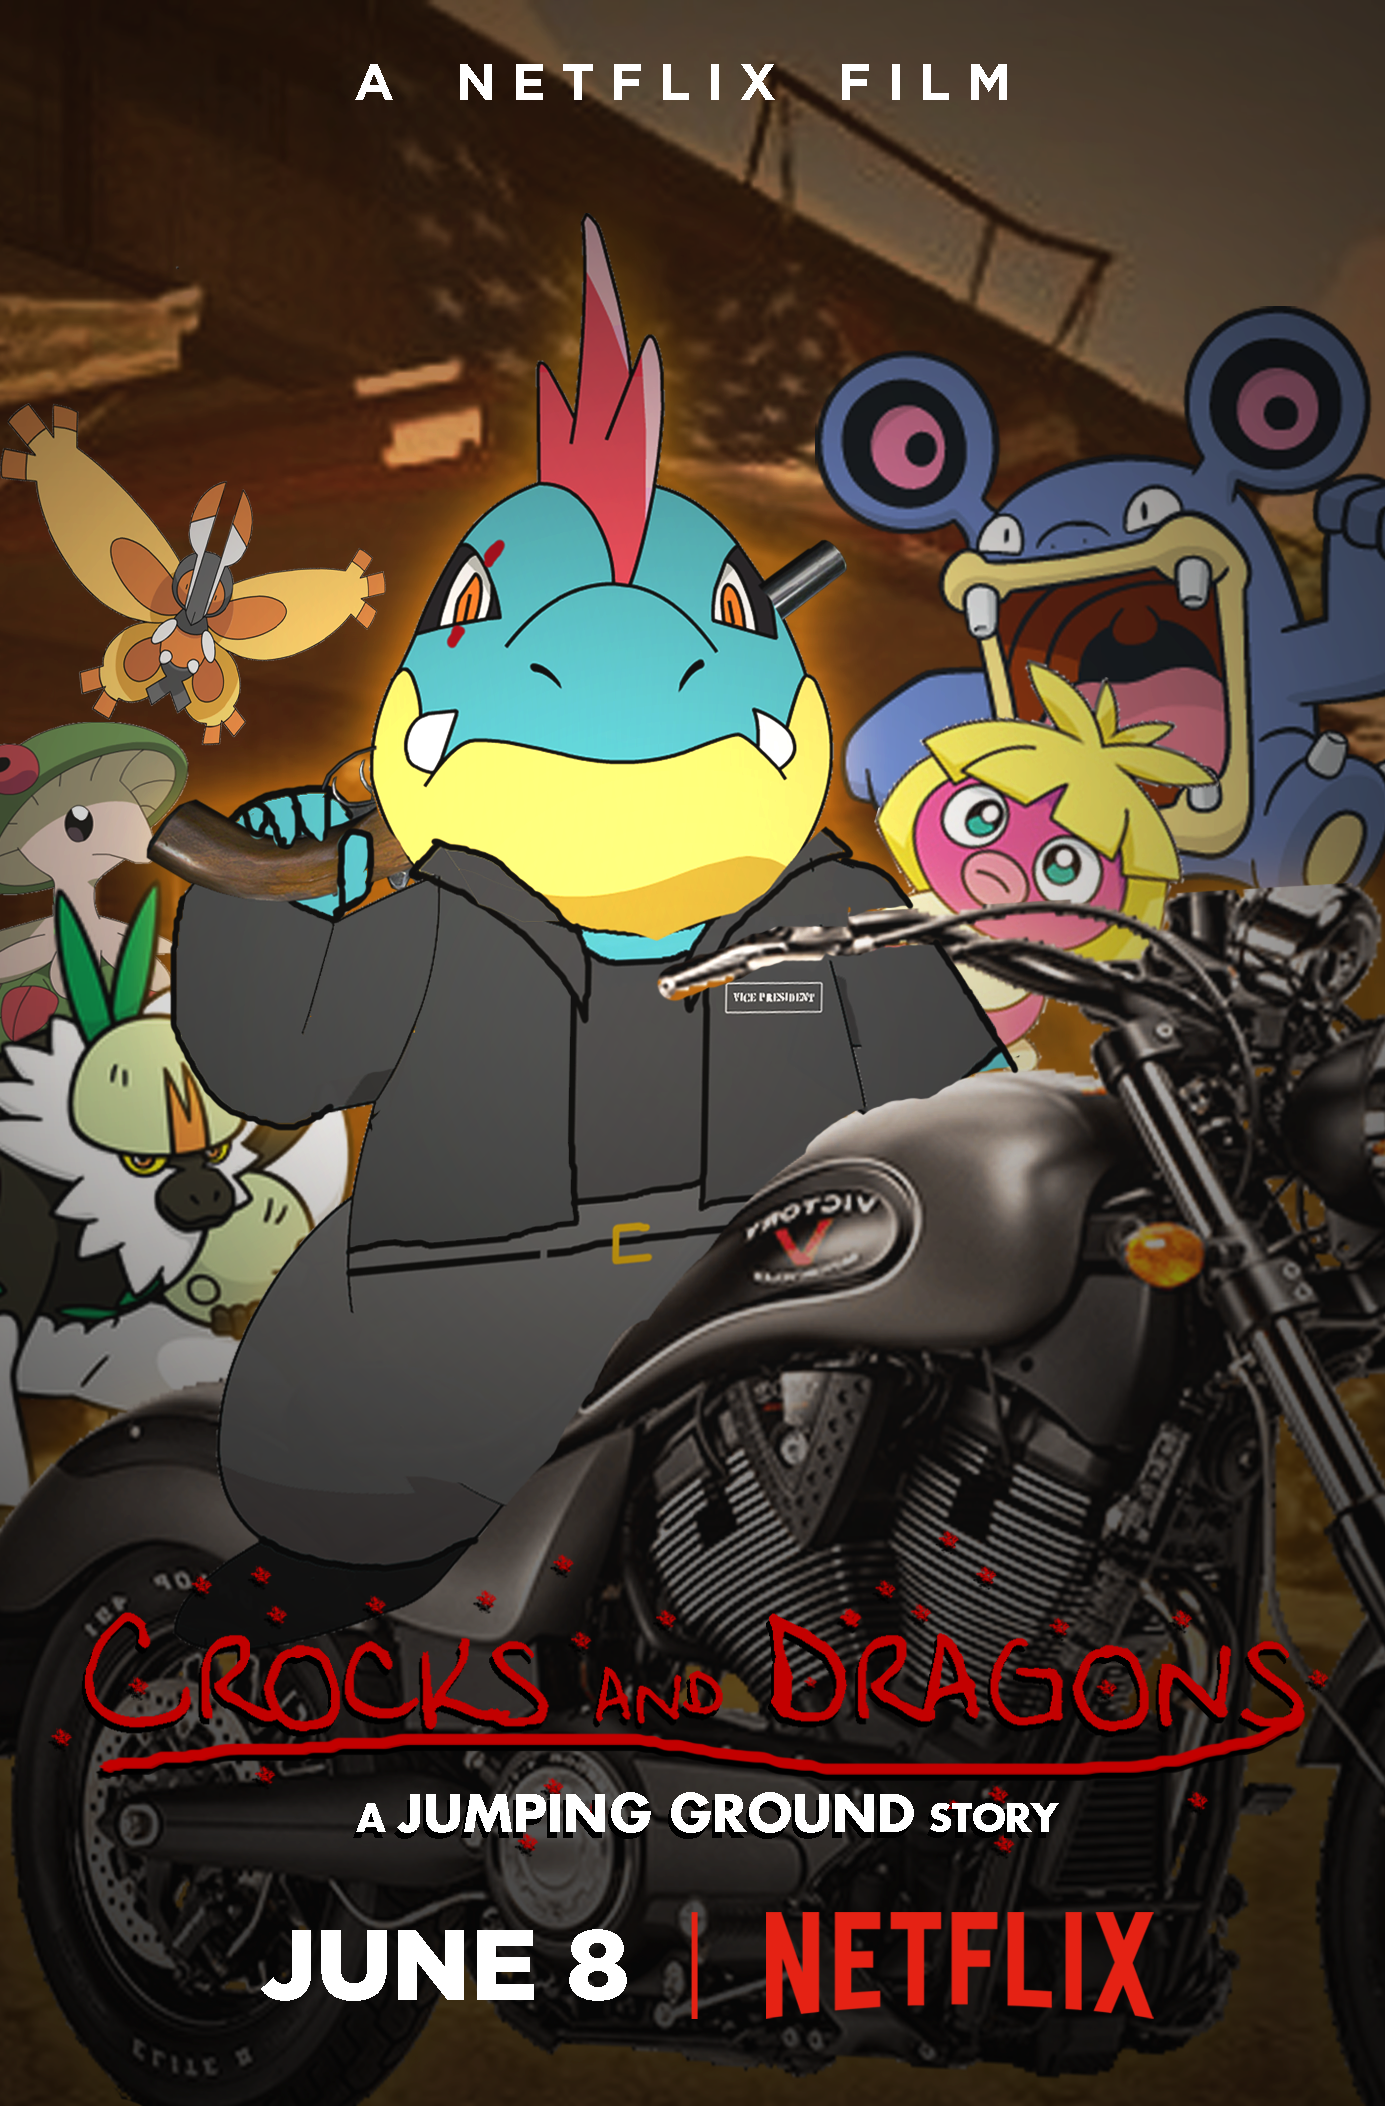 Crocks and Dragons